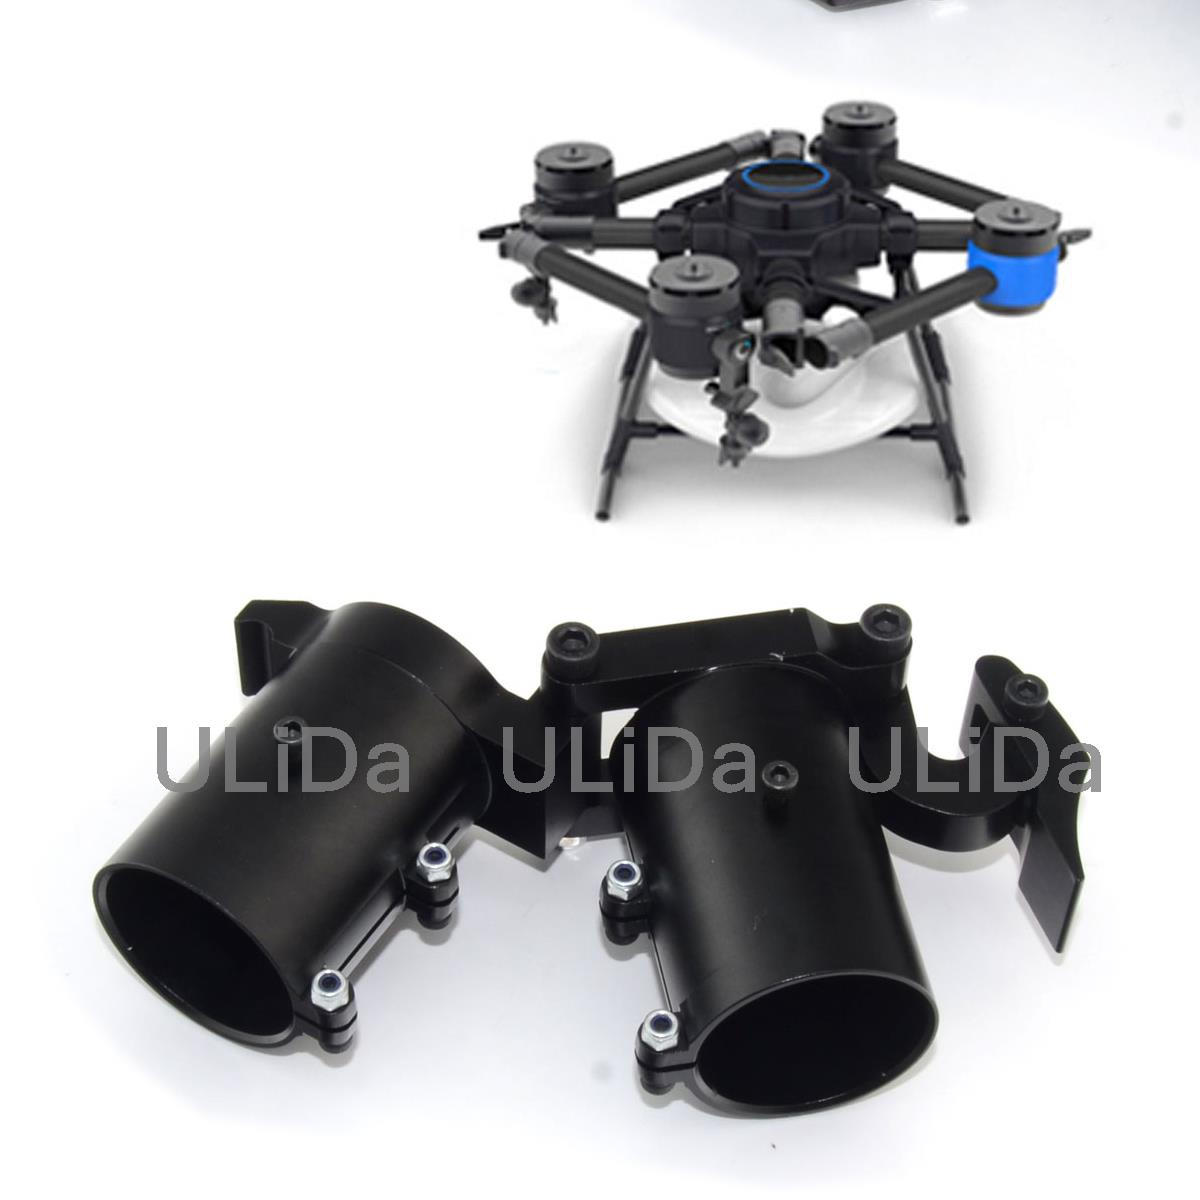 35mm CNC Aluminum Lateral Folding Arm Tube Joint Horizontal Fold for RC Multi-Copter Quadcopter Multirotor Drone UAV35mm CNC Aluminum Lateral Folding Arm Tube Joint Horizontal Fold for RC Multi-Copter Quadcopter Multirotor Drone UAV